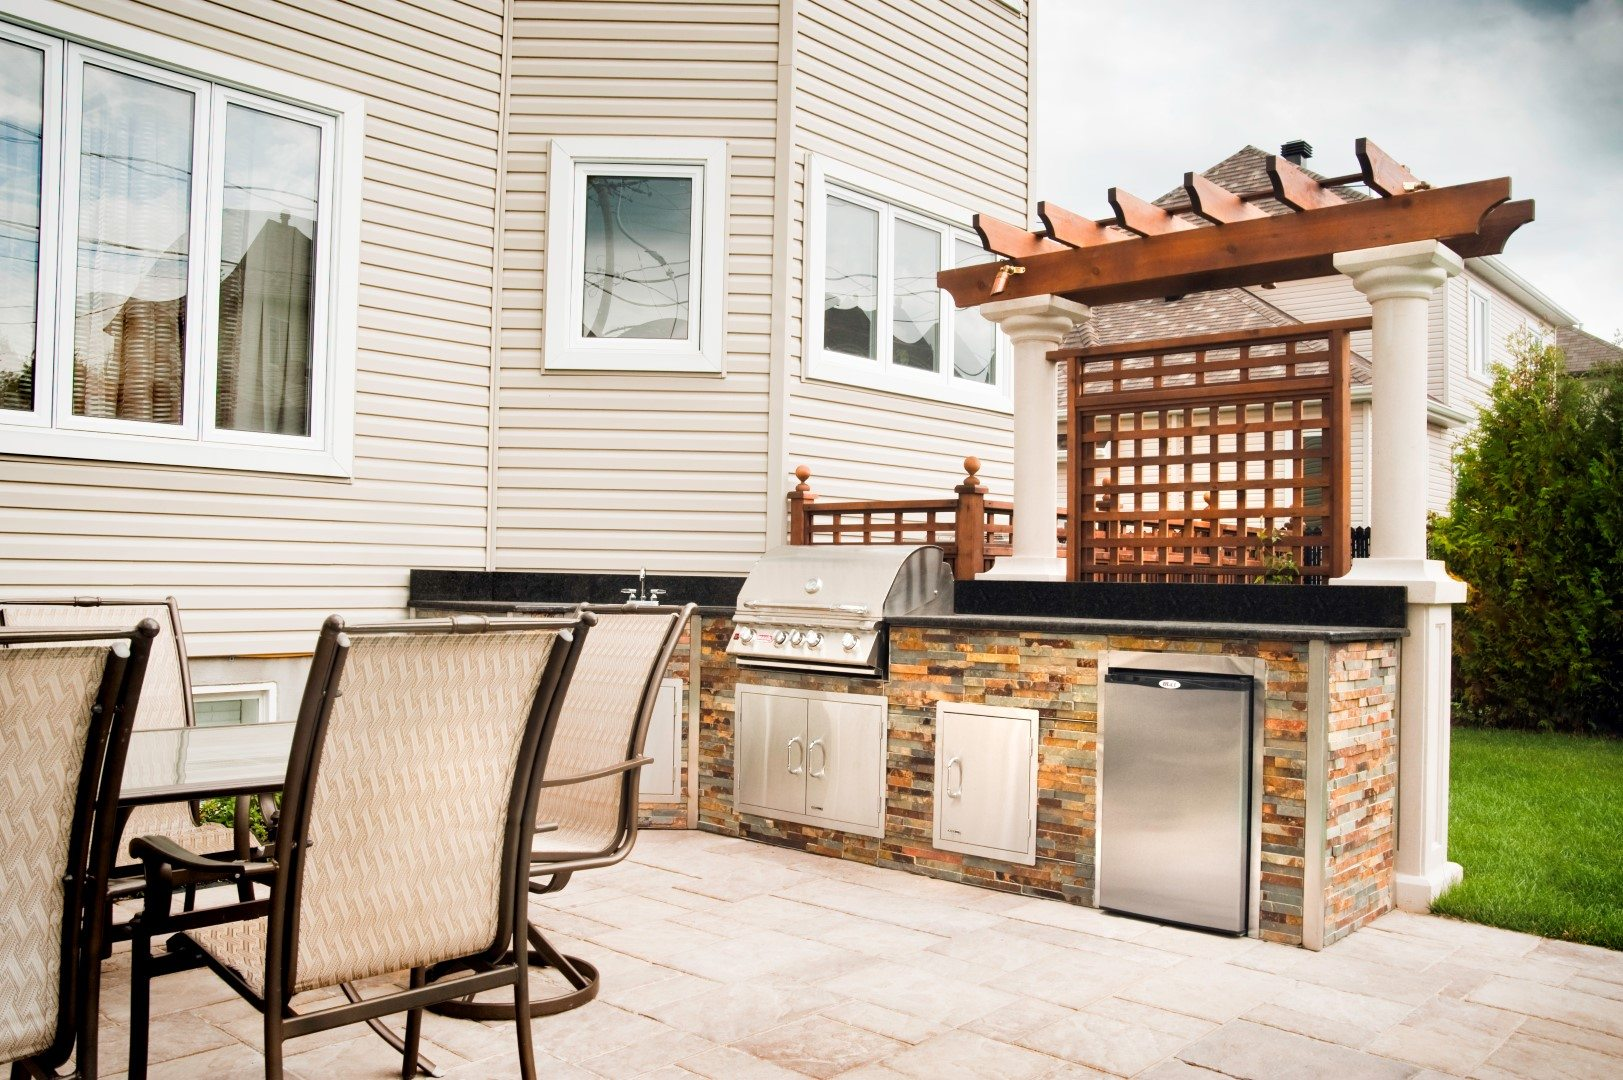 Amenagement Barbecue Exterieur Amenagement Barbecue Exterieur. Good Perfect Coin Repas